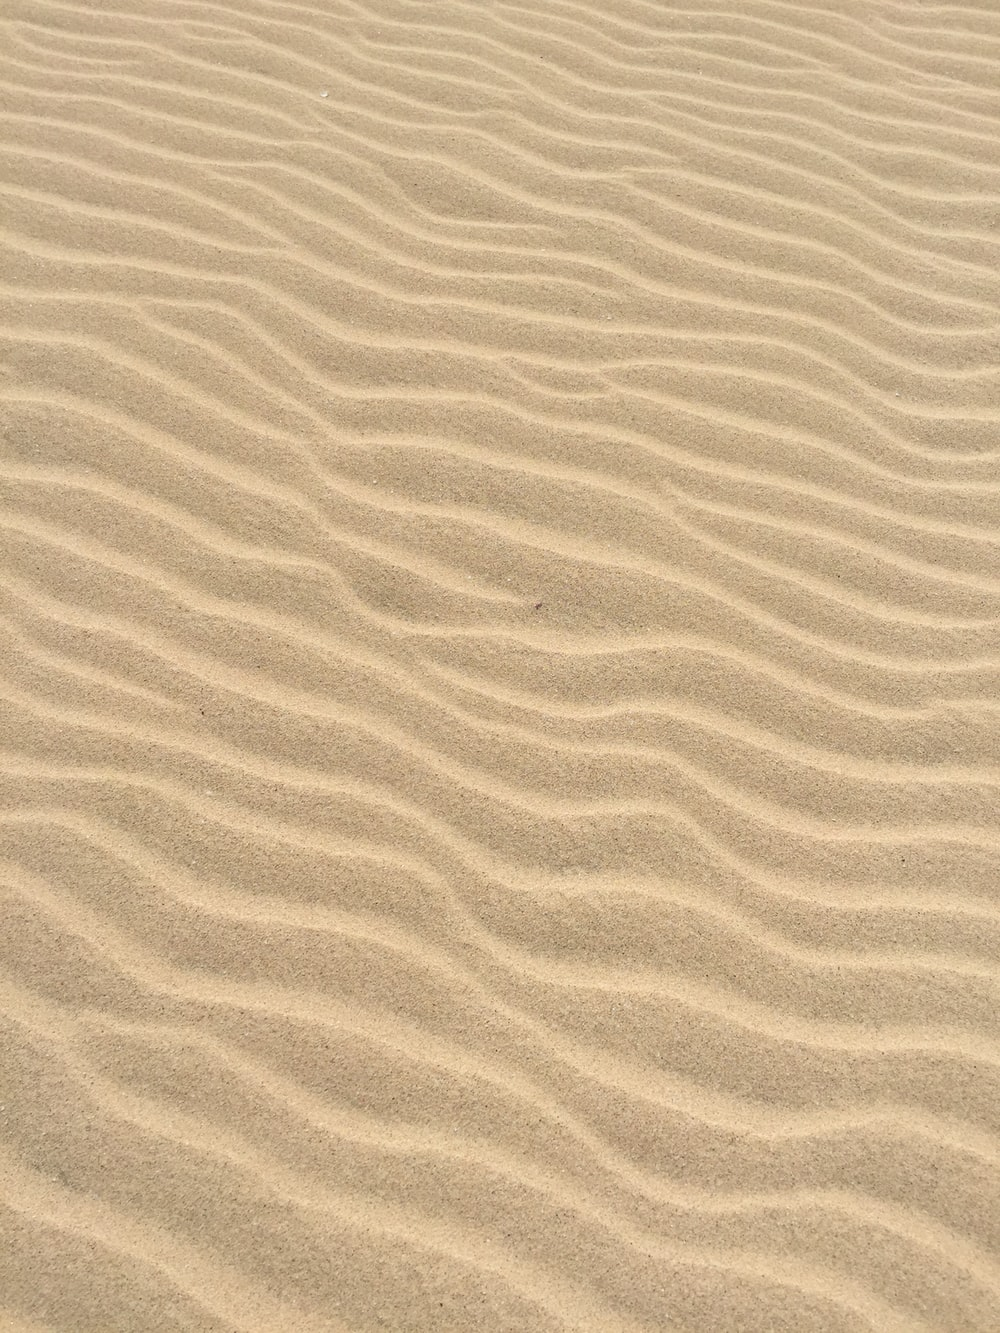 sand pictures hq download free images on unsplash